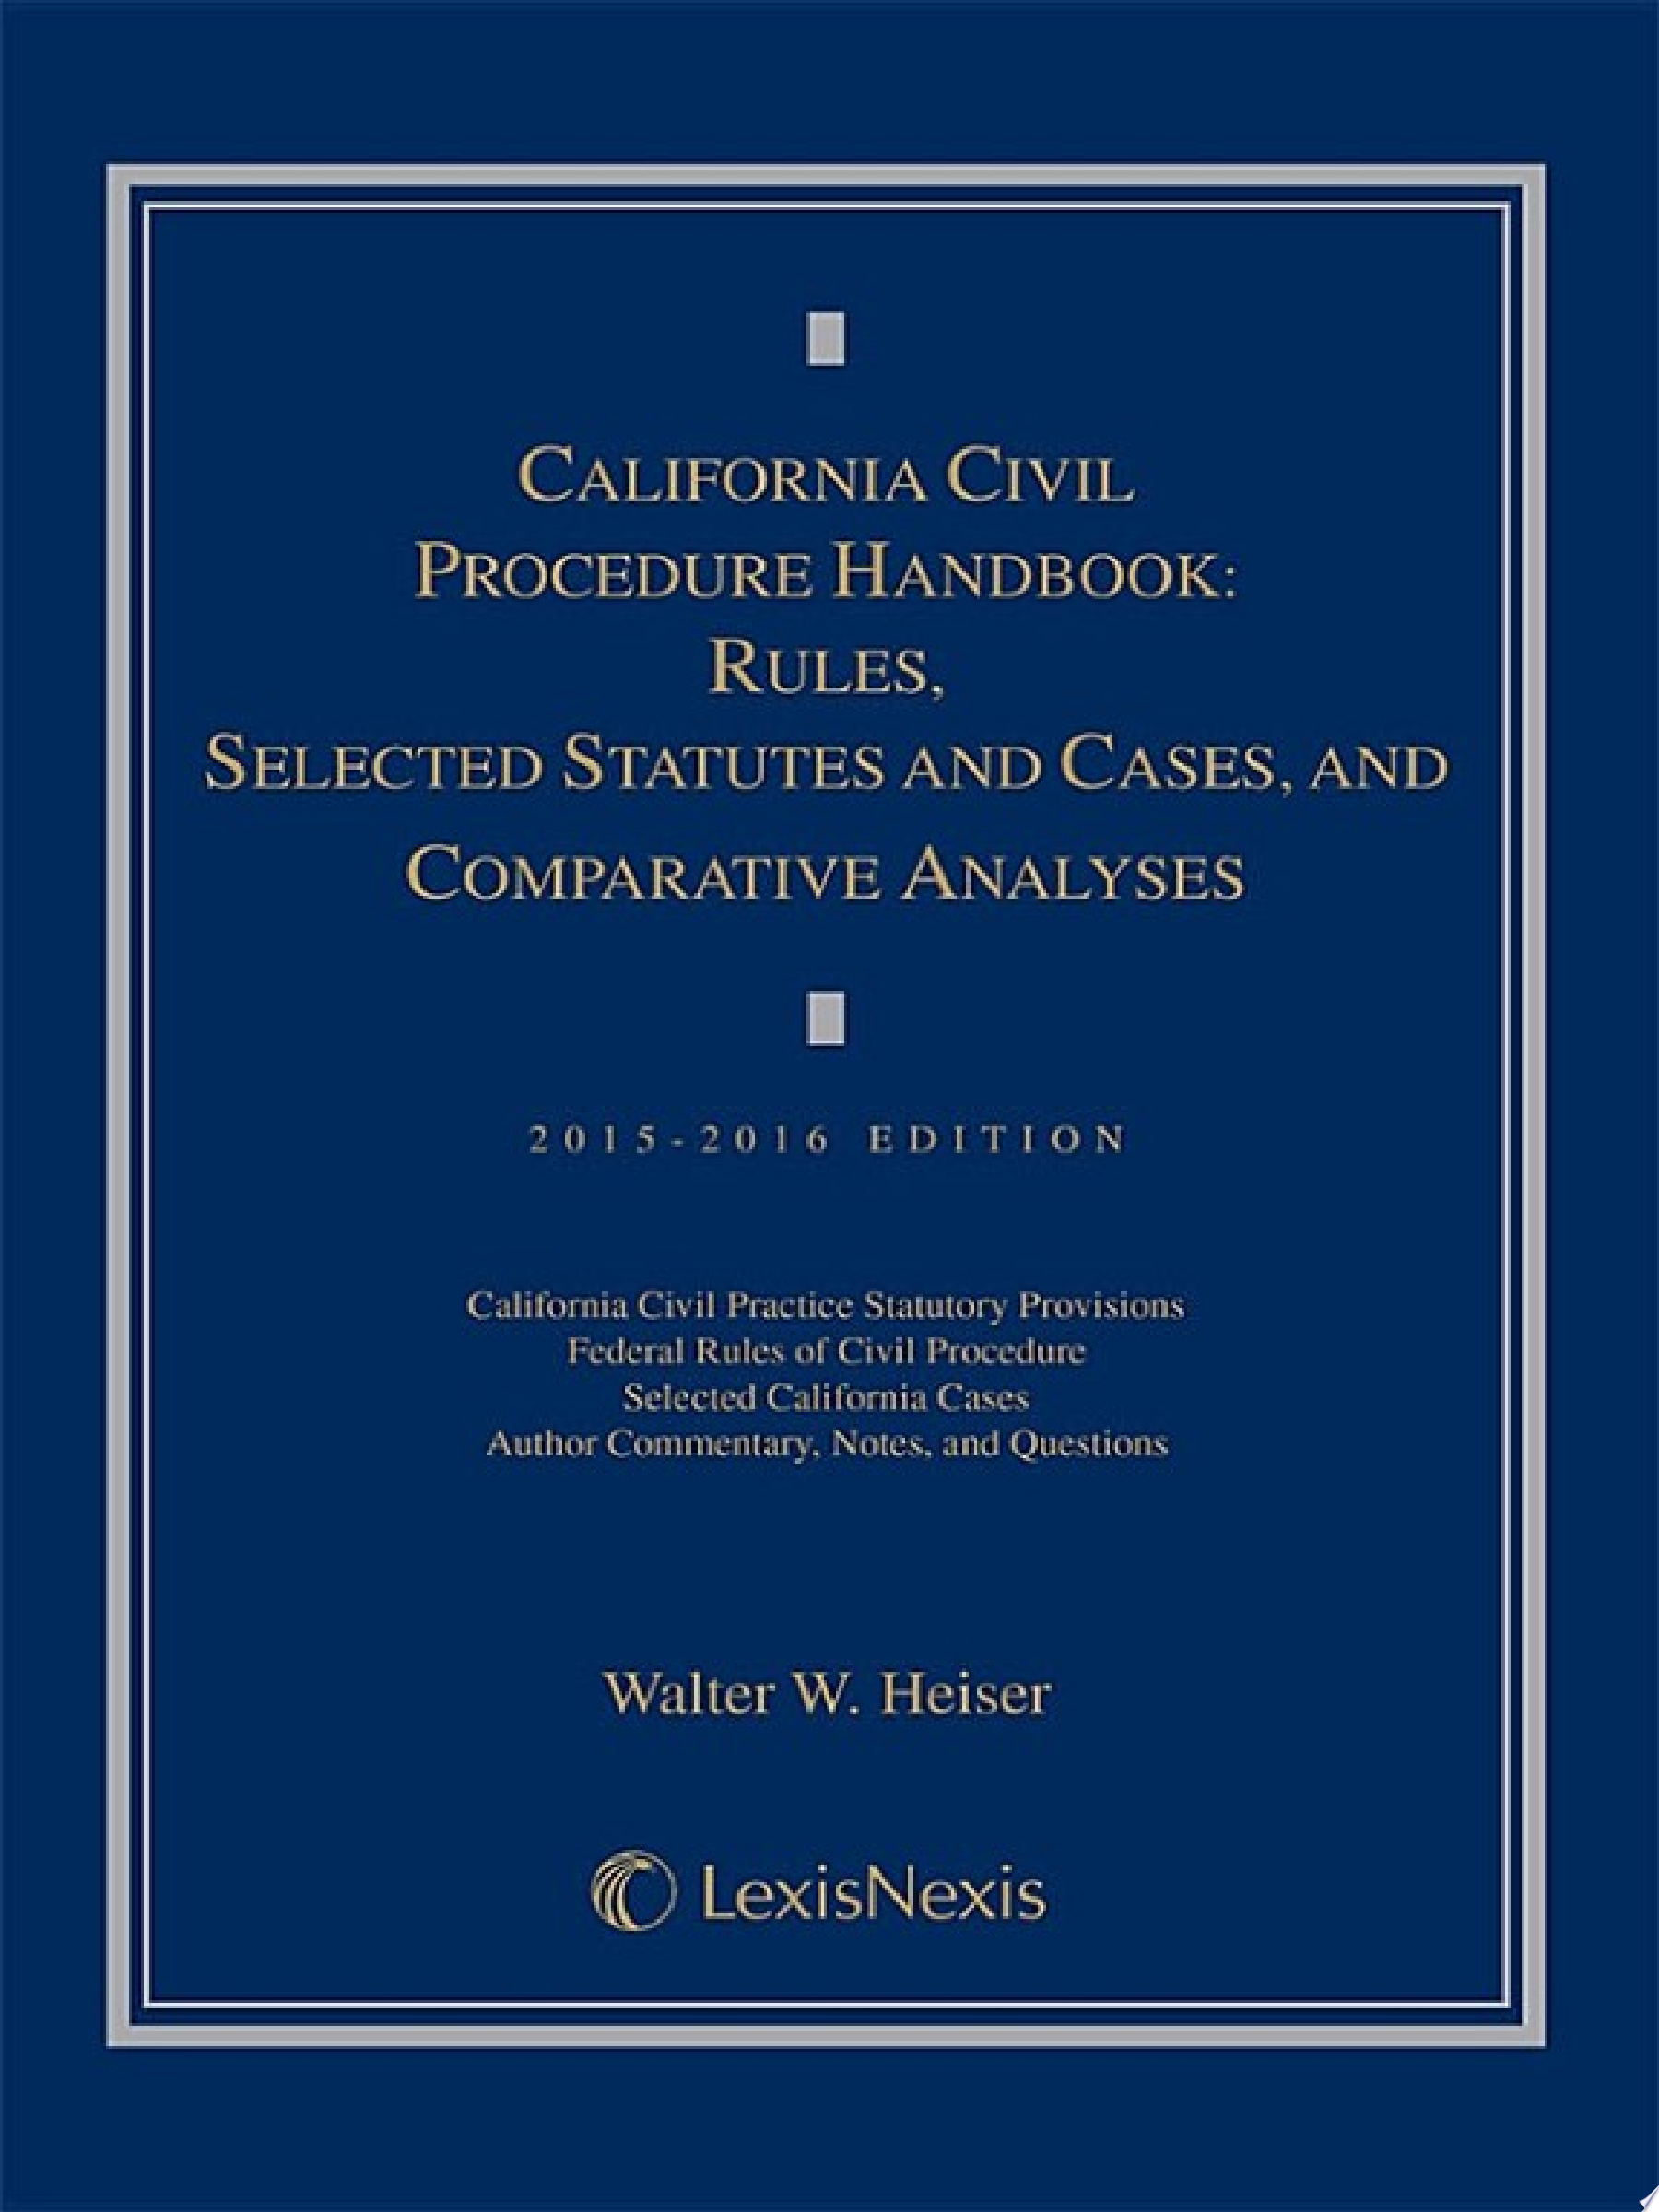 California Civil Procedure Handbook  Rules  Selected Statutes and Cases  and Comparative Analyses  2015 2016 Edition